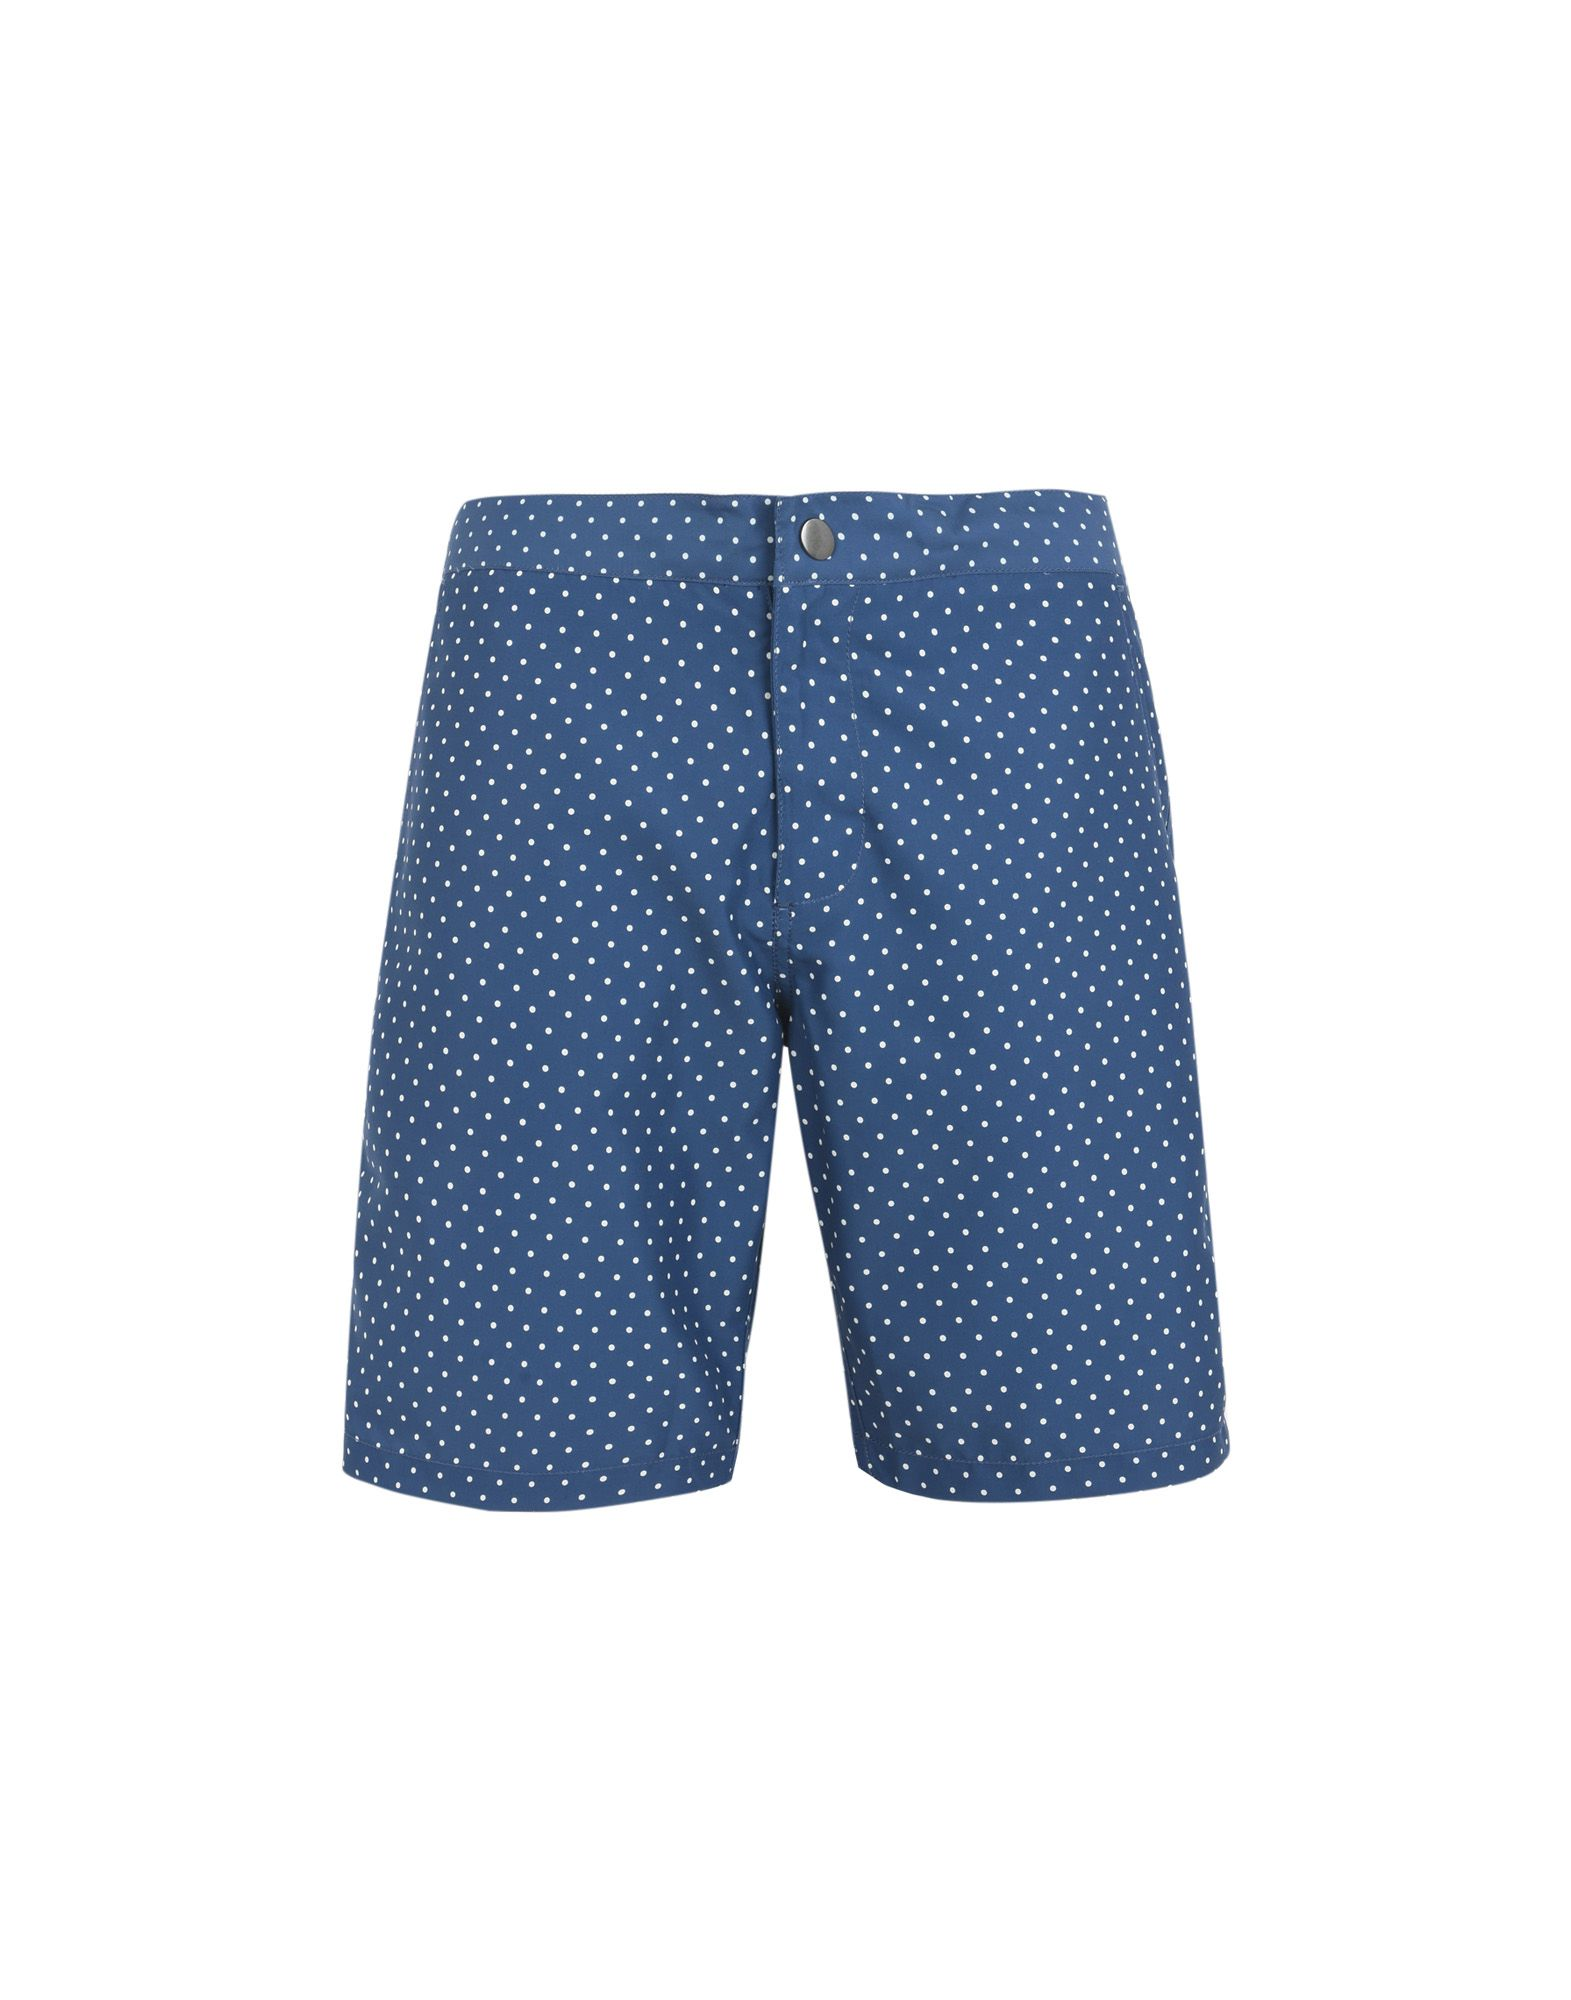 RIZ BOARDSHORTS Swim Shorts in Blue